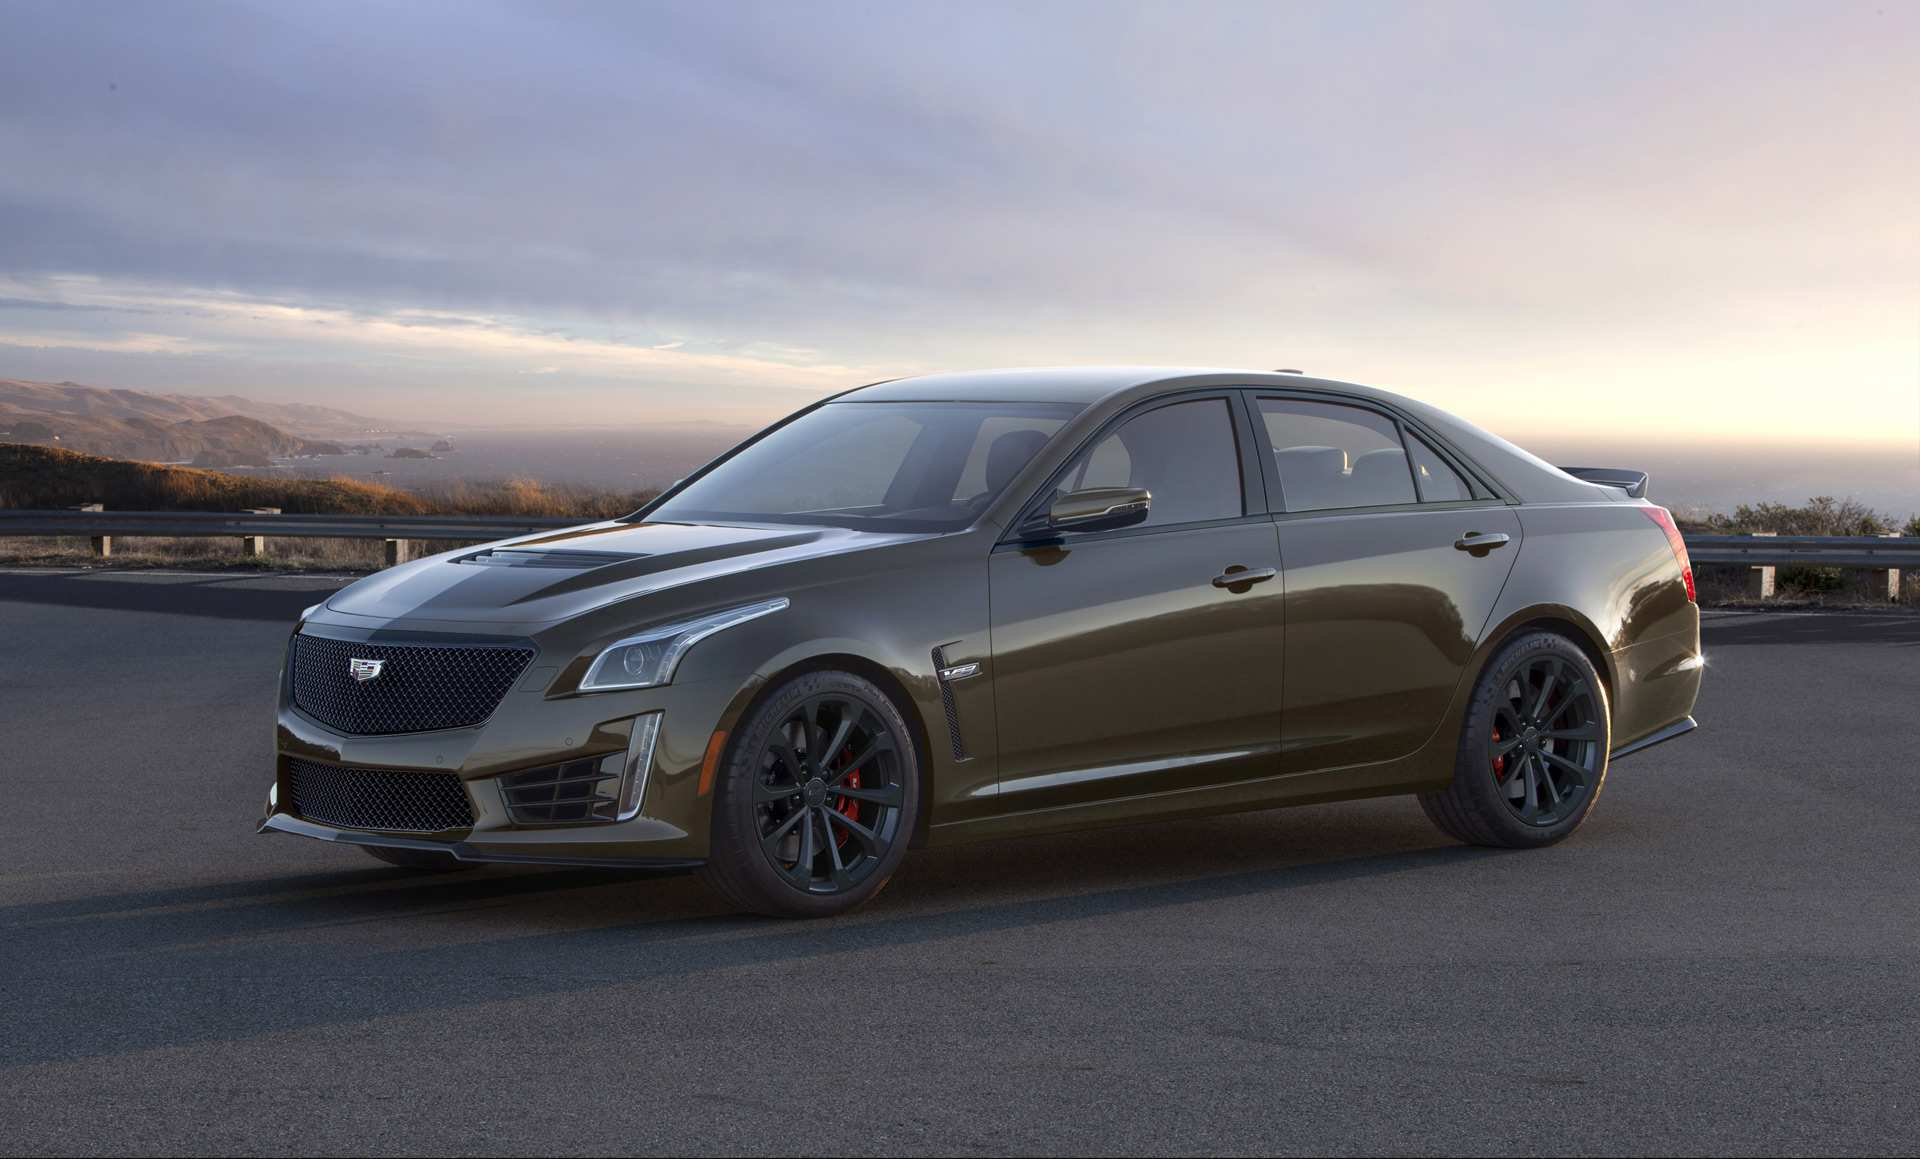 90 New 2019 Cadillac Cts V Coupe Overview